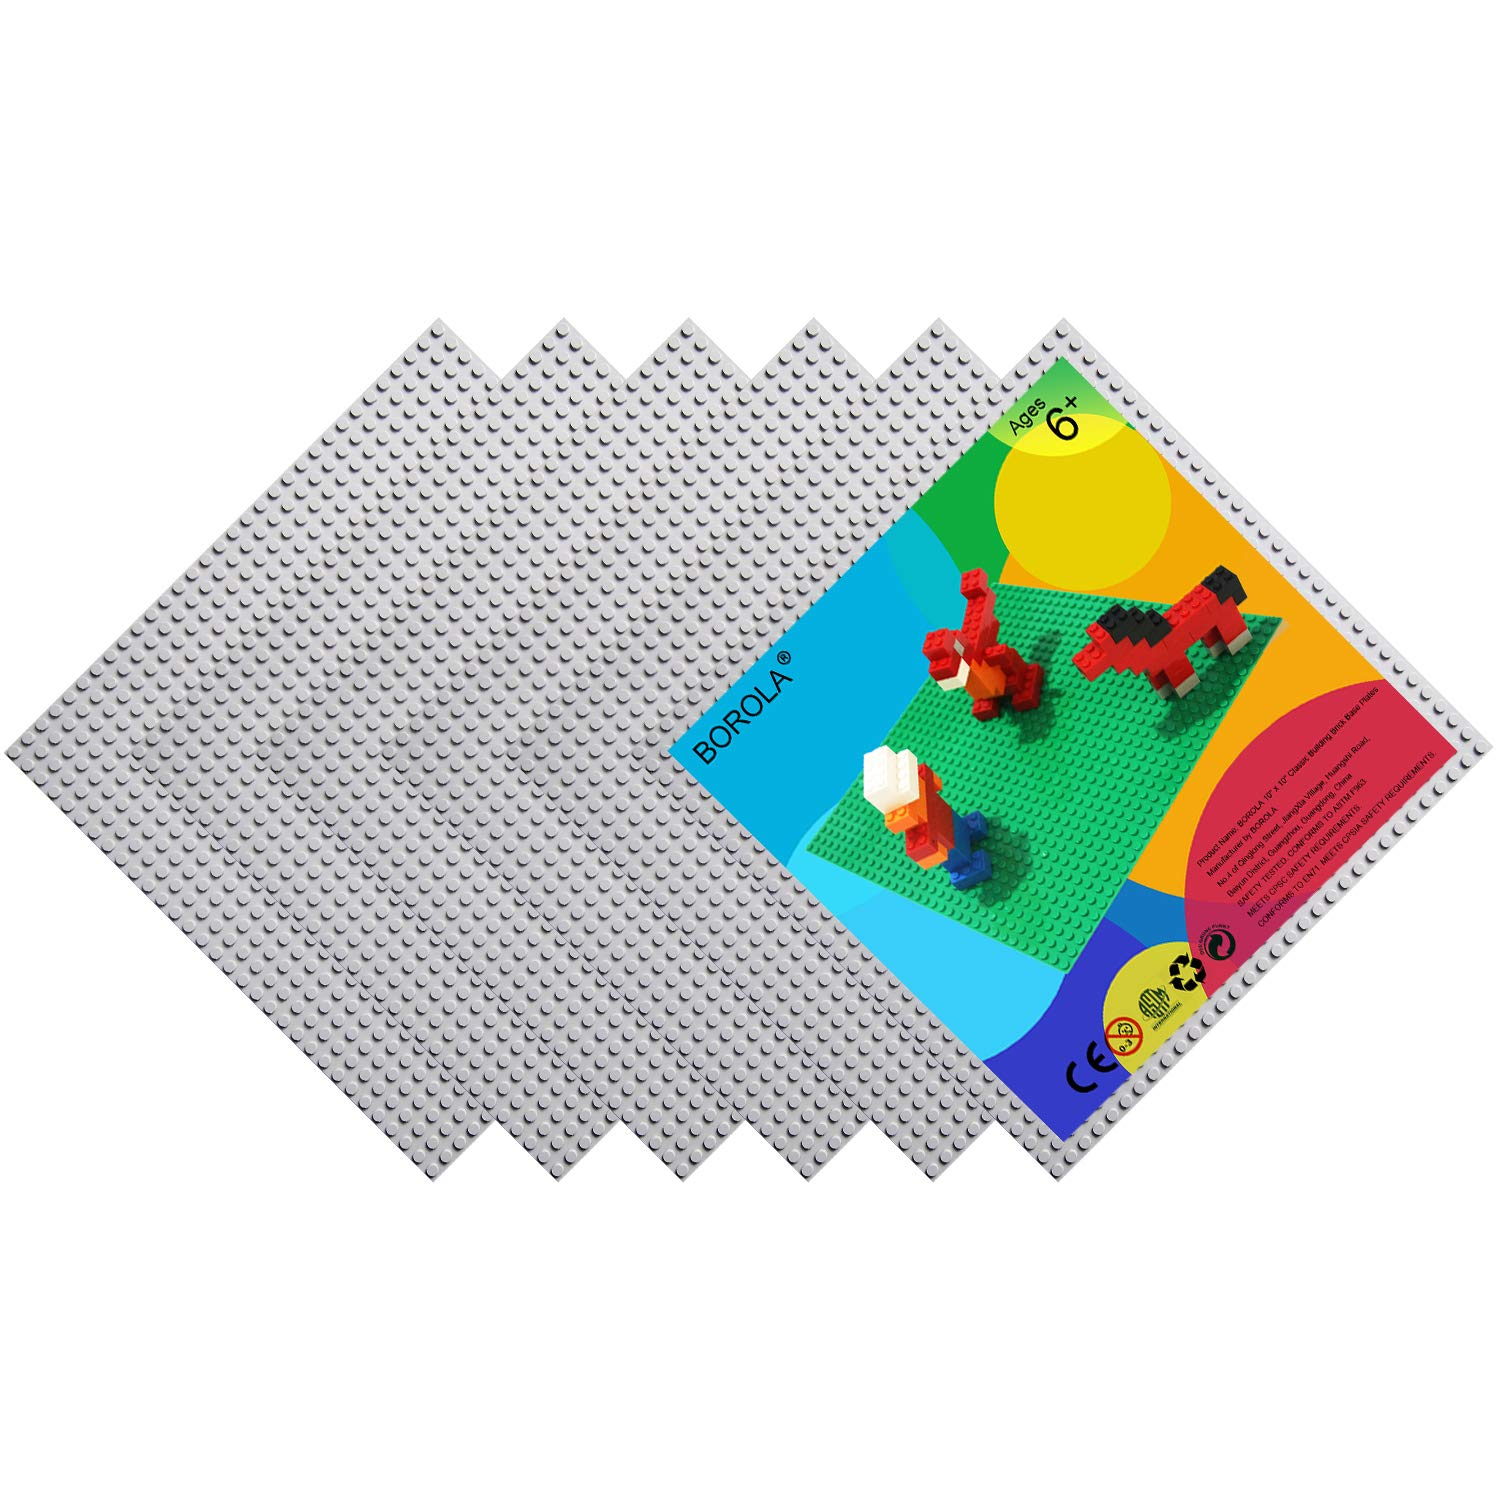 Compatible Most Major Brands Building Bricks 10 x 10 in Variety Color 4-Pack, Sand BOROLA Classic Building Base Block Plate